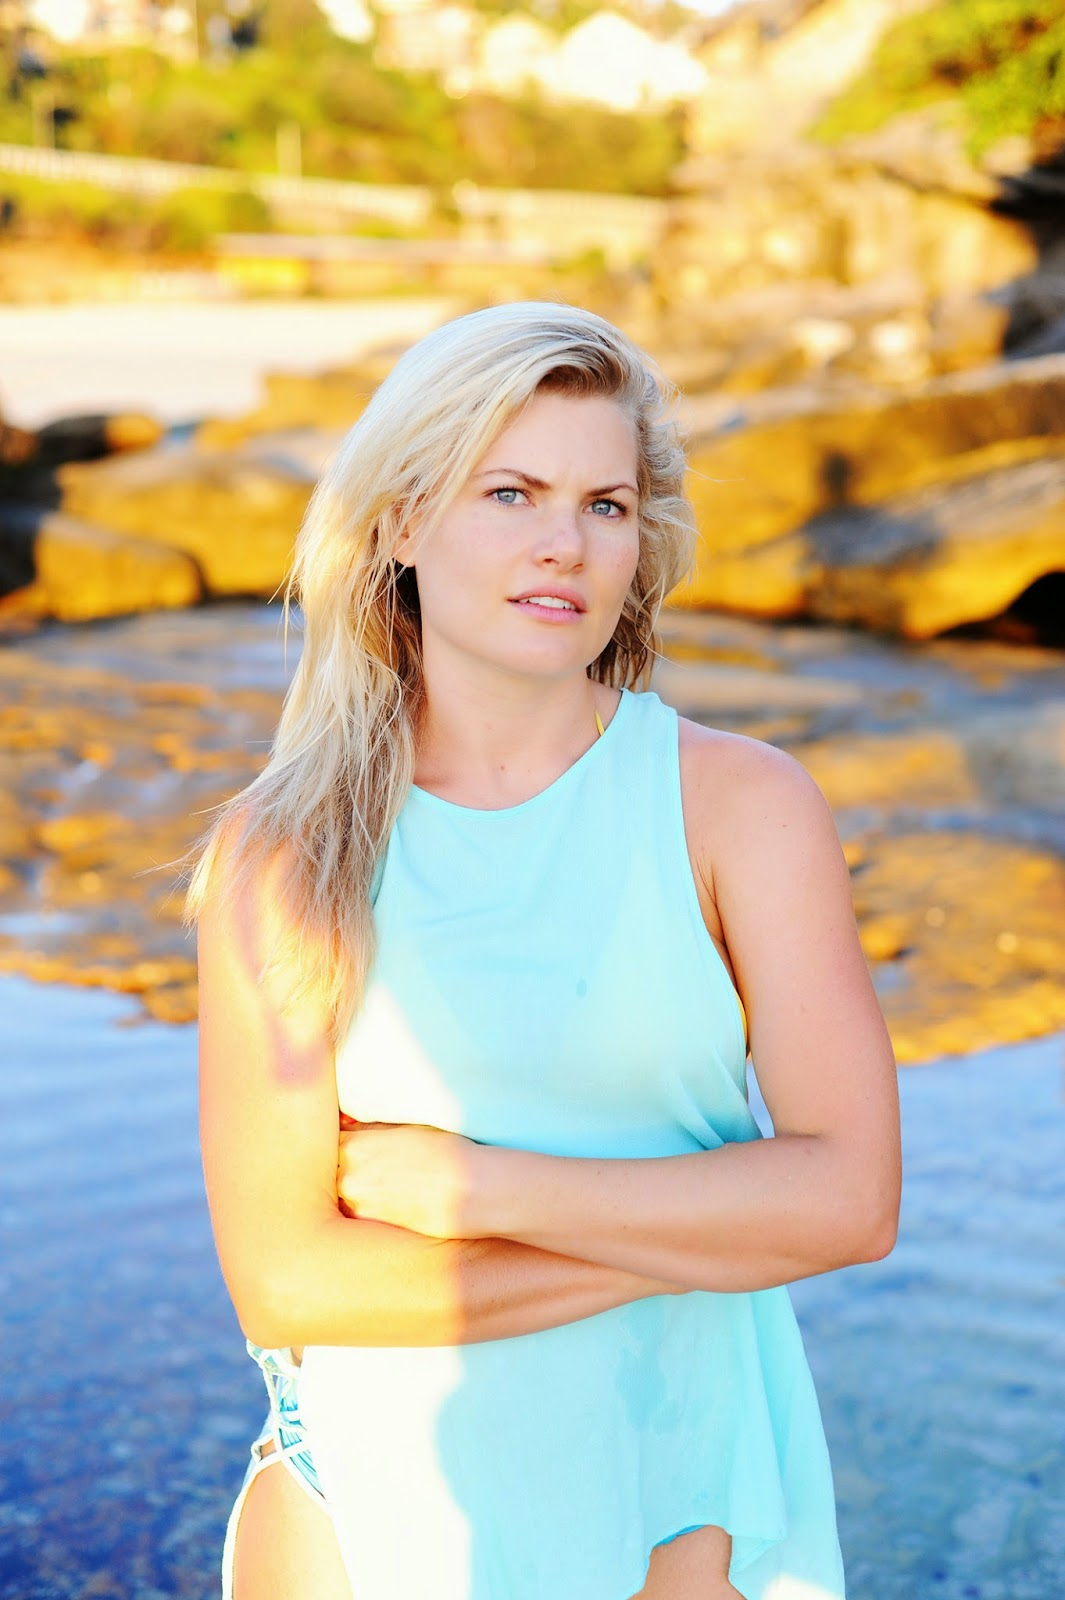 bra Bonnie Sveen naked photo 2017